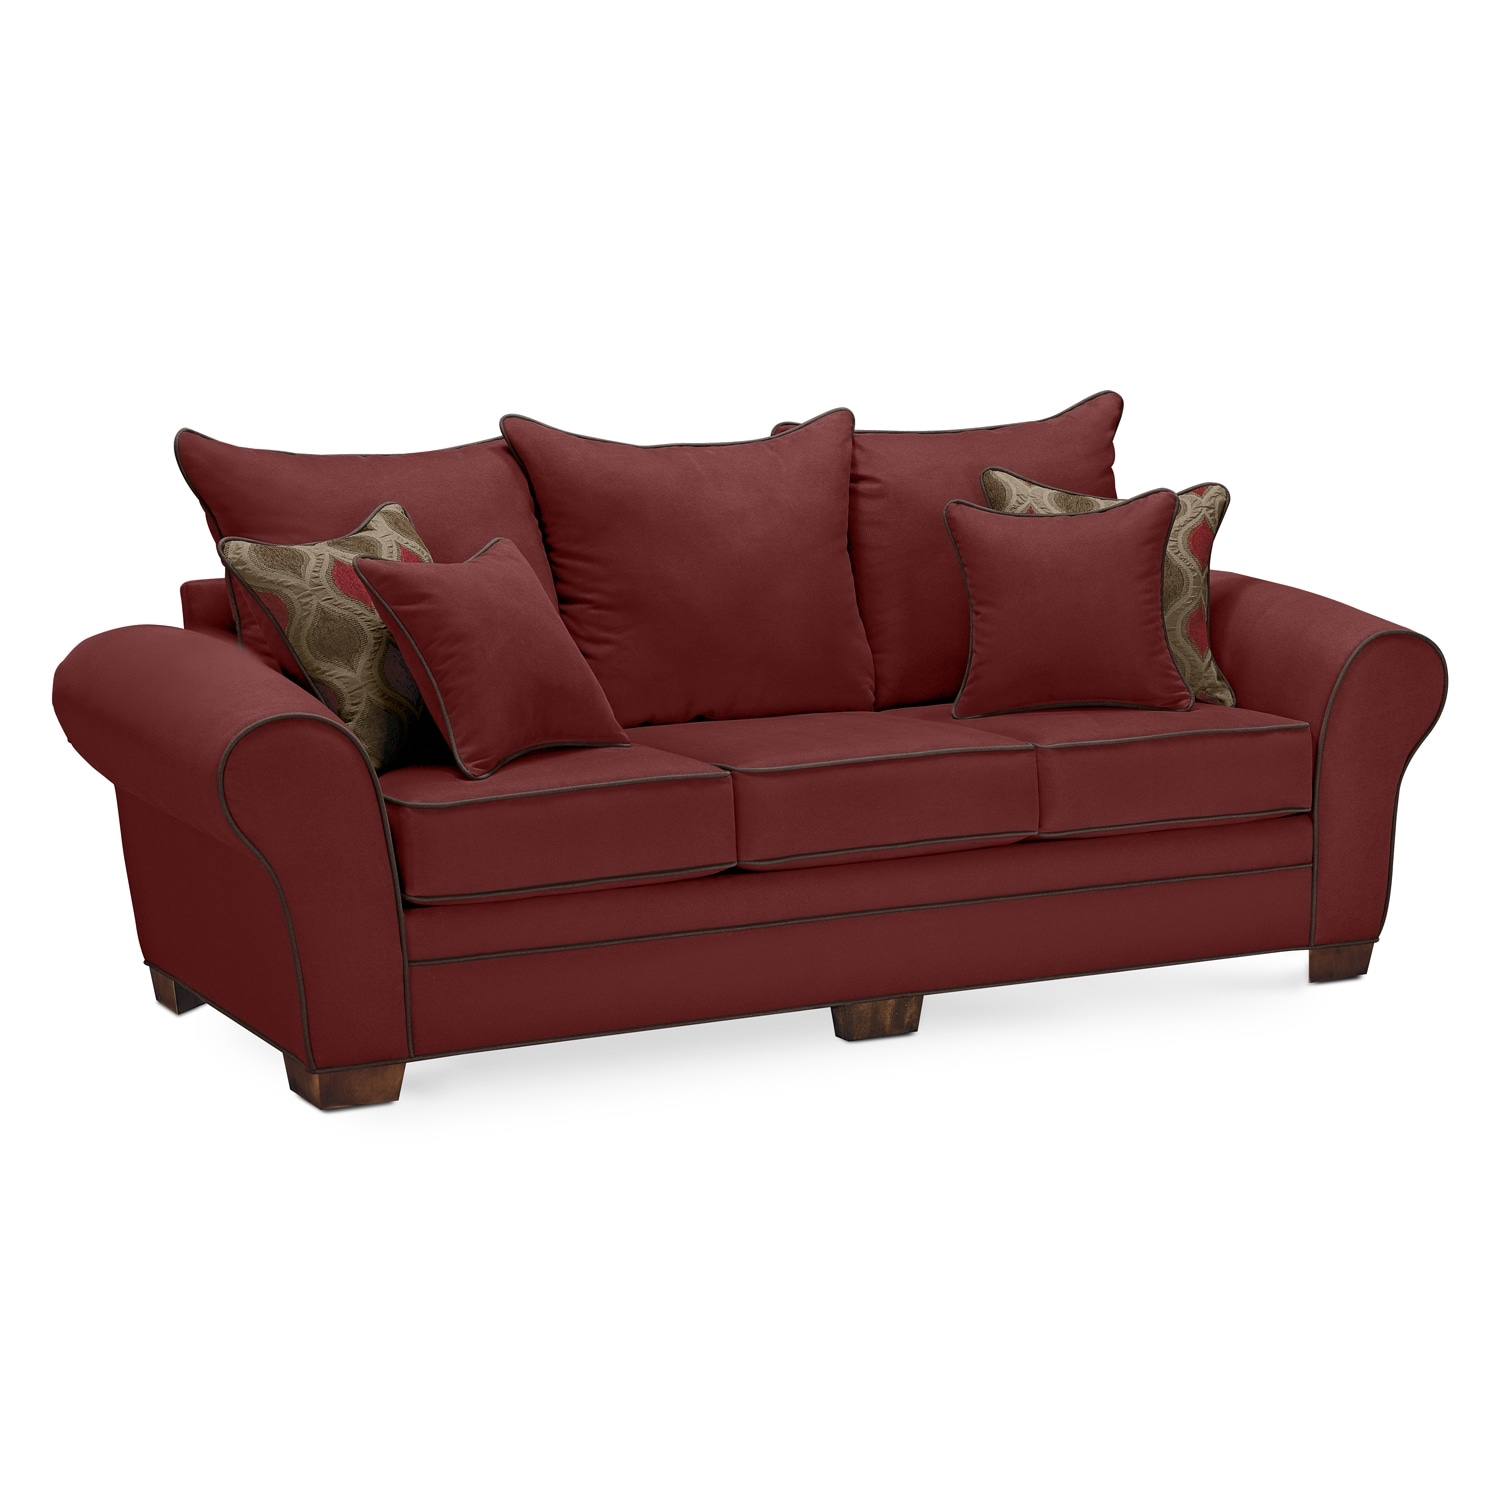 Rendezvous sofa wine value city furniture for Sofa upholstery